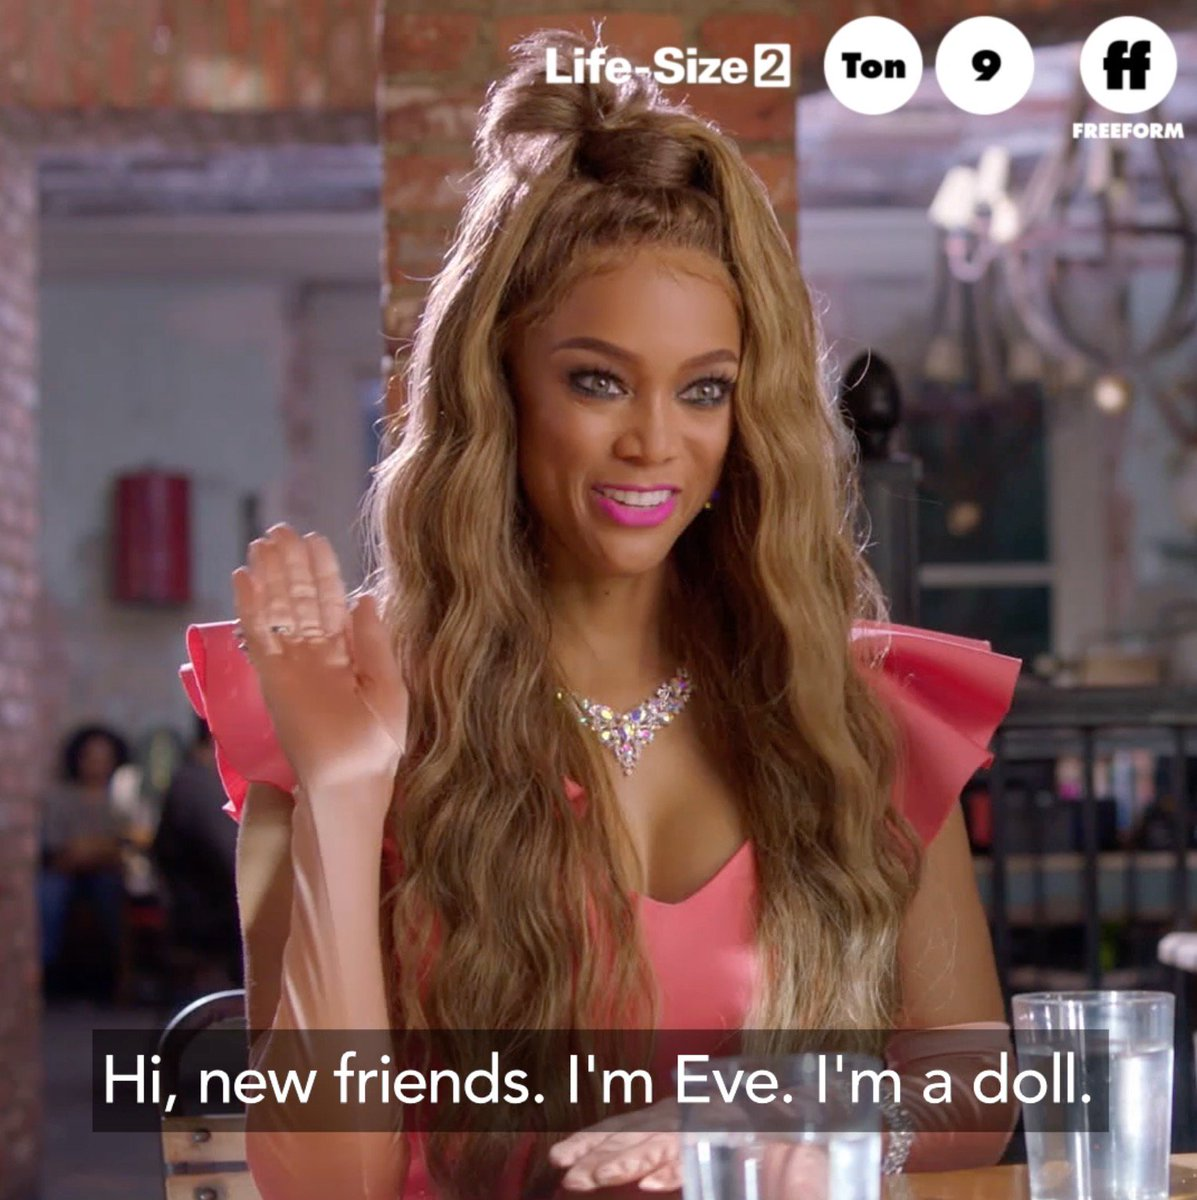 RT @25Days: Shine brighter. Shine farther.  #LifeSize2 premieres tonight at 9pm/8c on @FreeformTV. https://t.co/YbXnF17Zn4